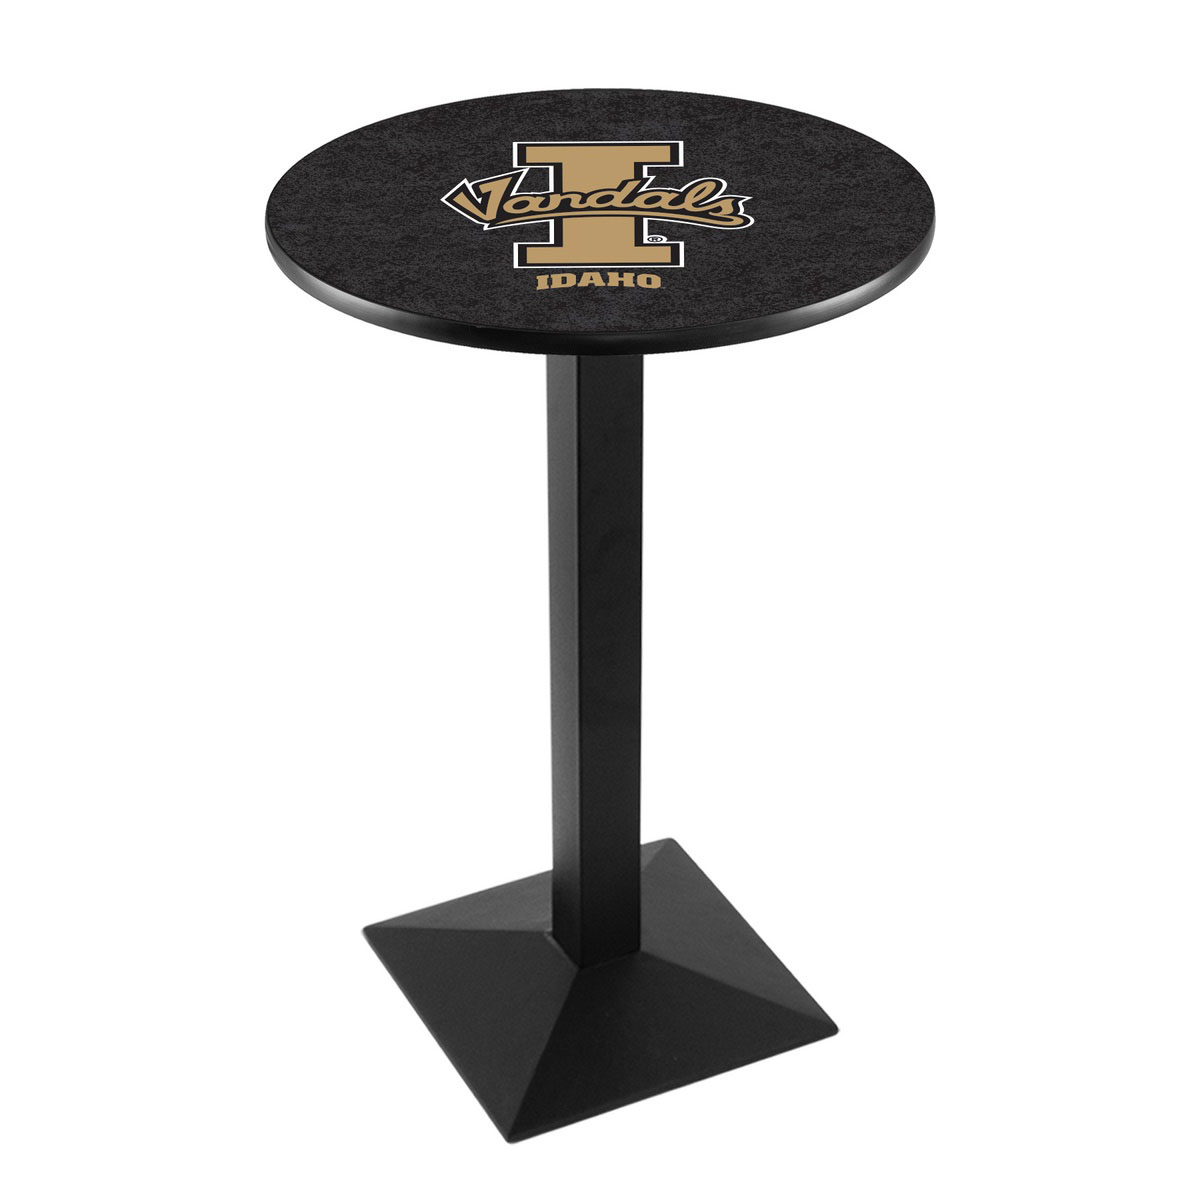 Excellent University Idaho Logo Pub Bar Table Square Stand Product Photo